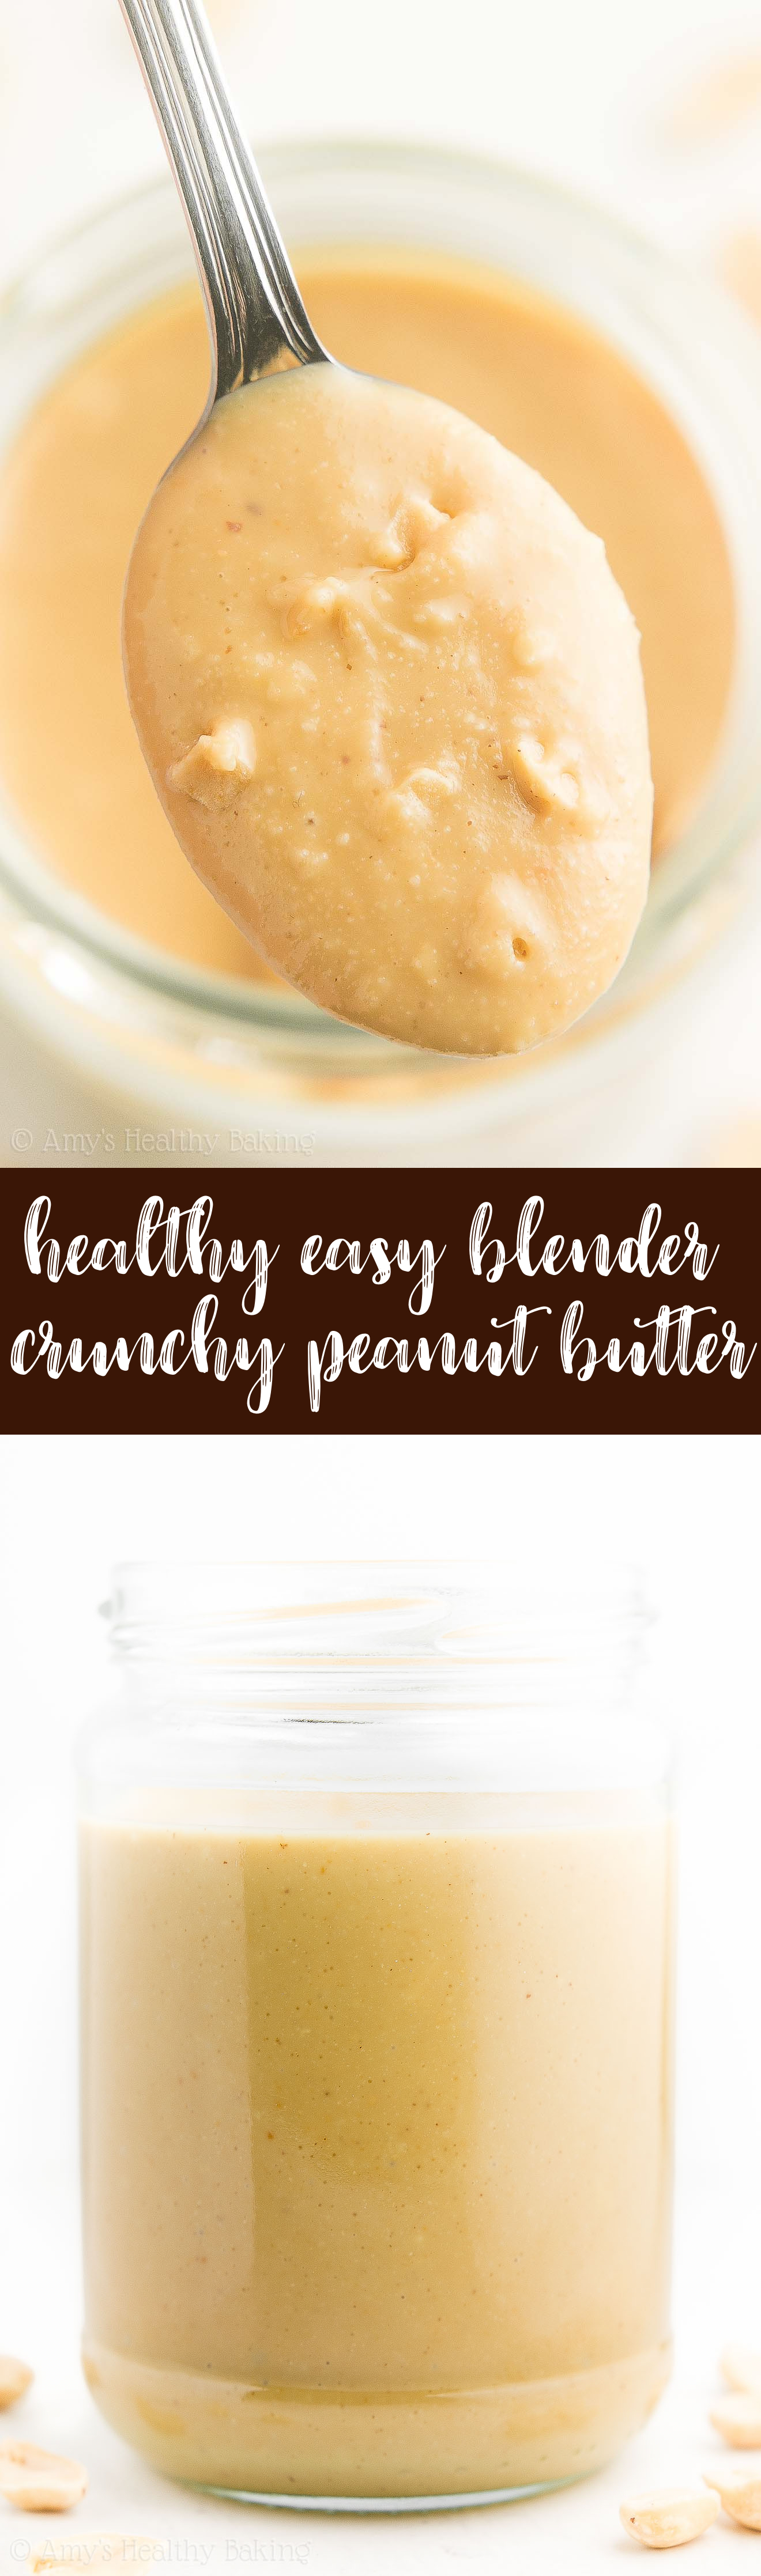 The Best Healthy Homemade Crunchy Peanut Butter!